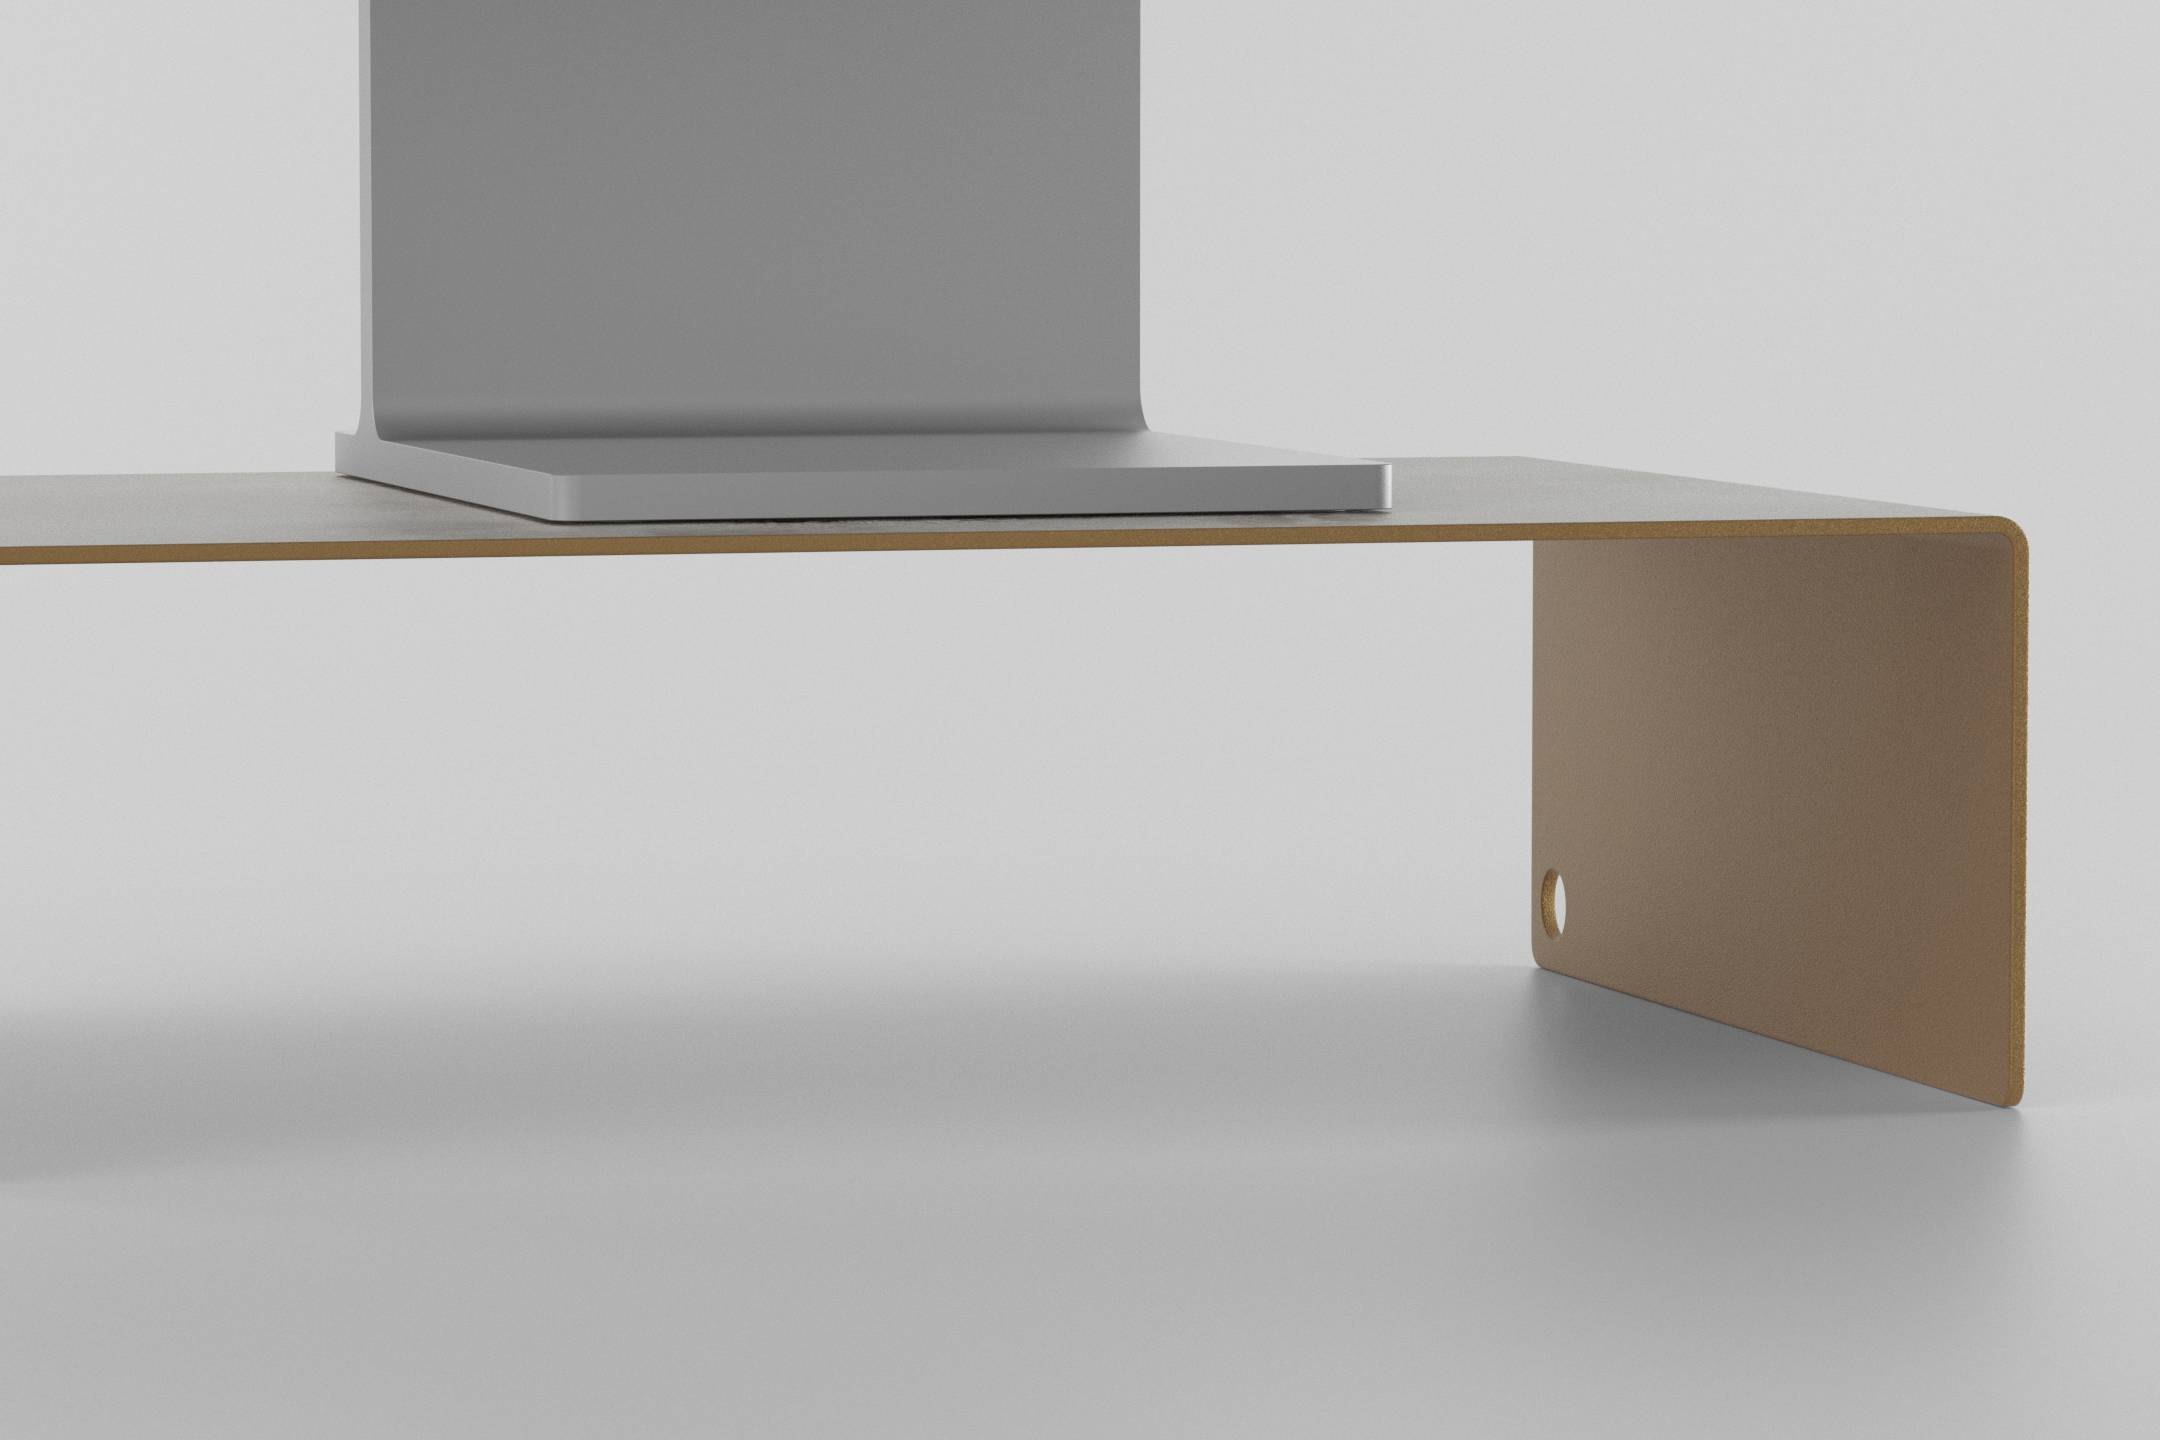 The Monitor Stand - brown beige with display on it